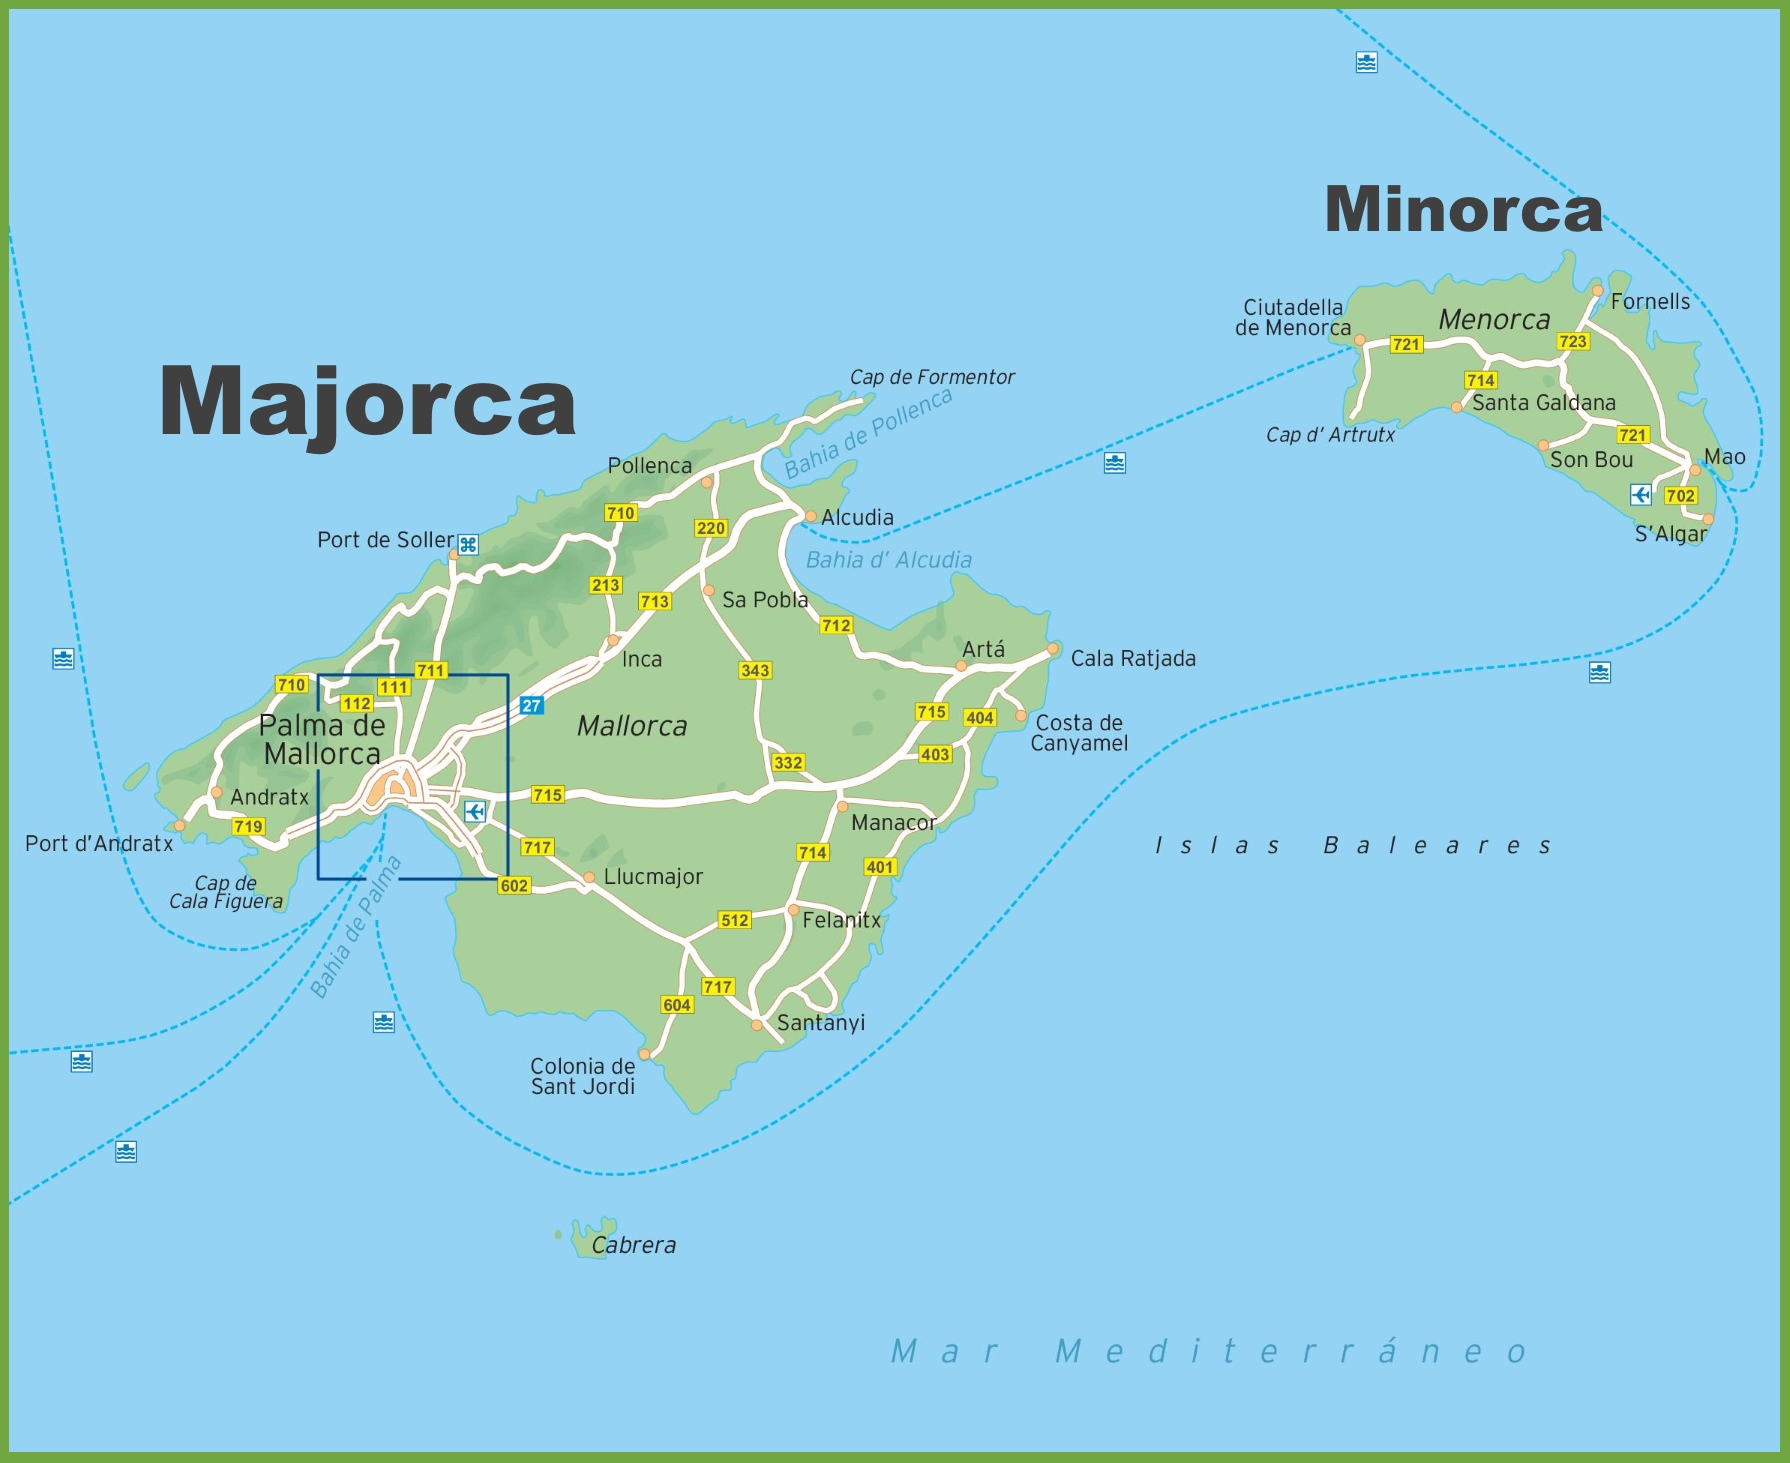 Minorca Maps Balearic Islands Spain Map of Minorca Menorca